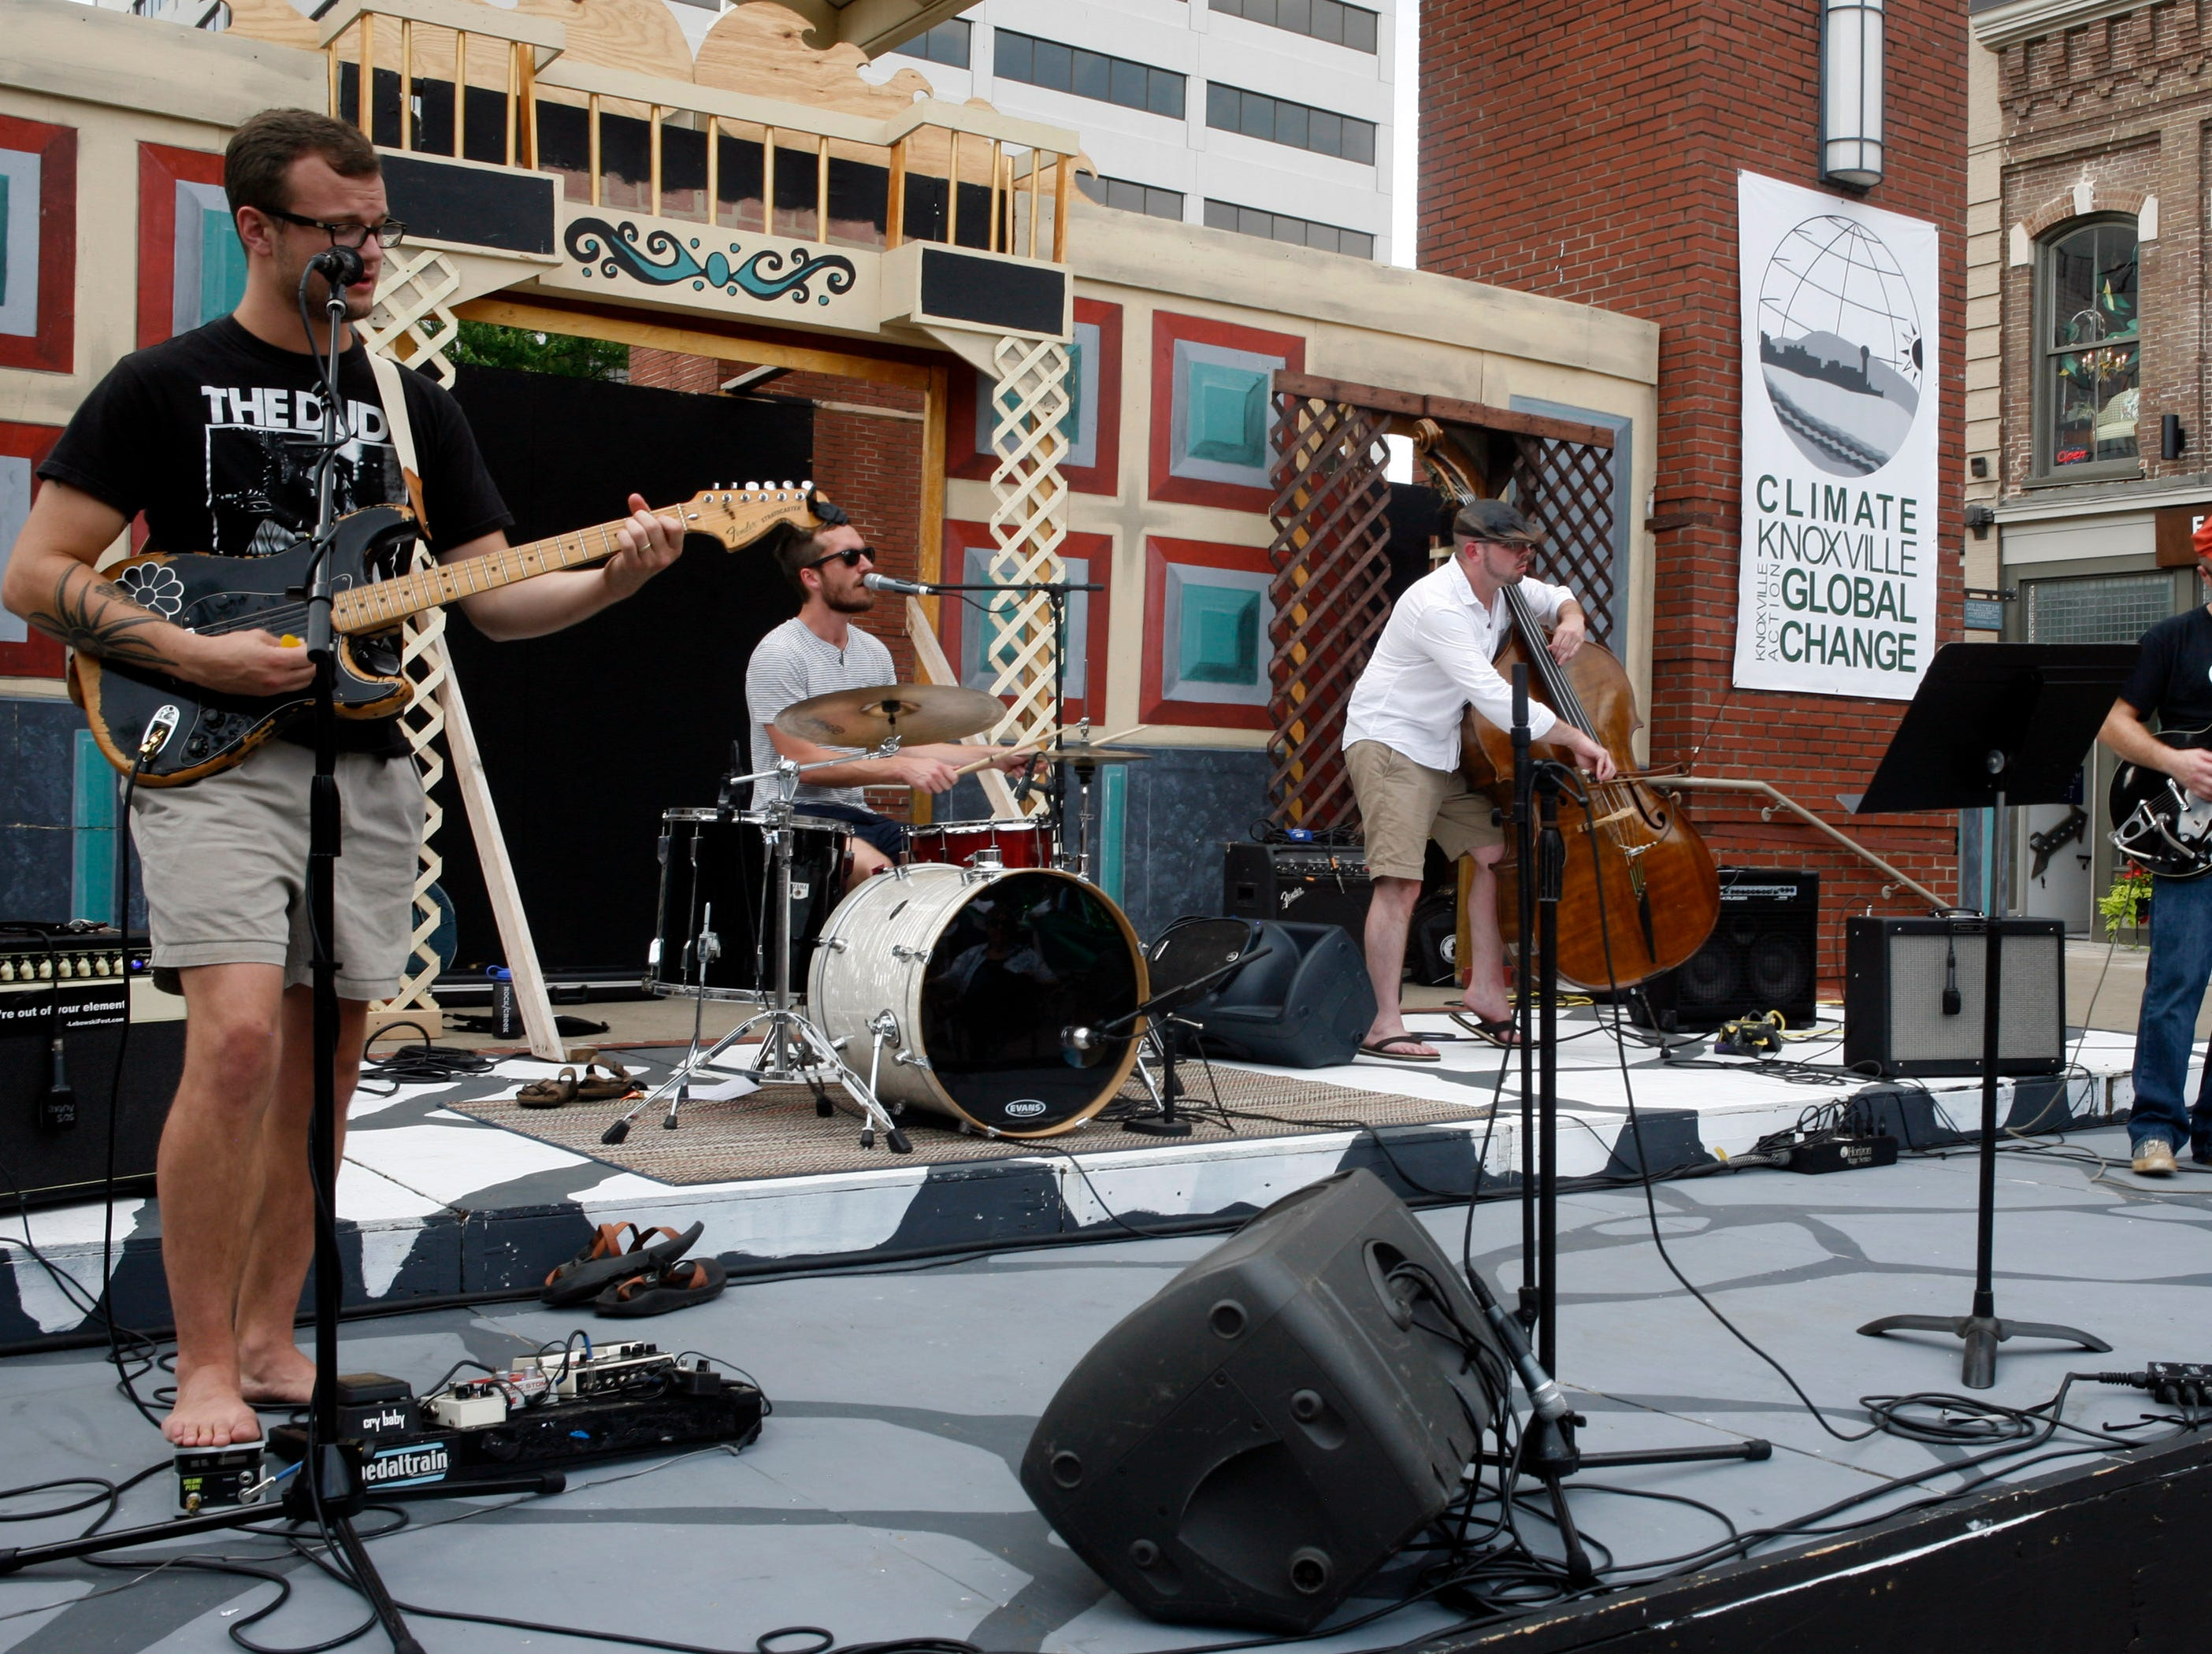 The band Chambers performs during an action event held by Climate Knoxville on Market Square. (Photo by Wade Payne, Special to the News Sentinel)